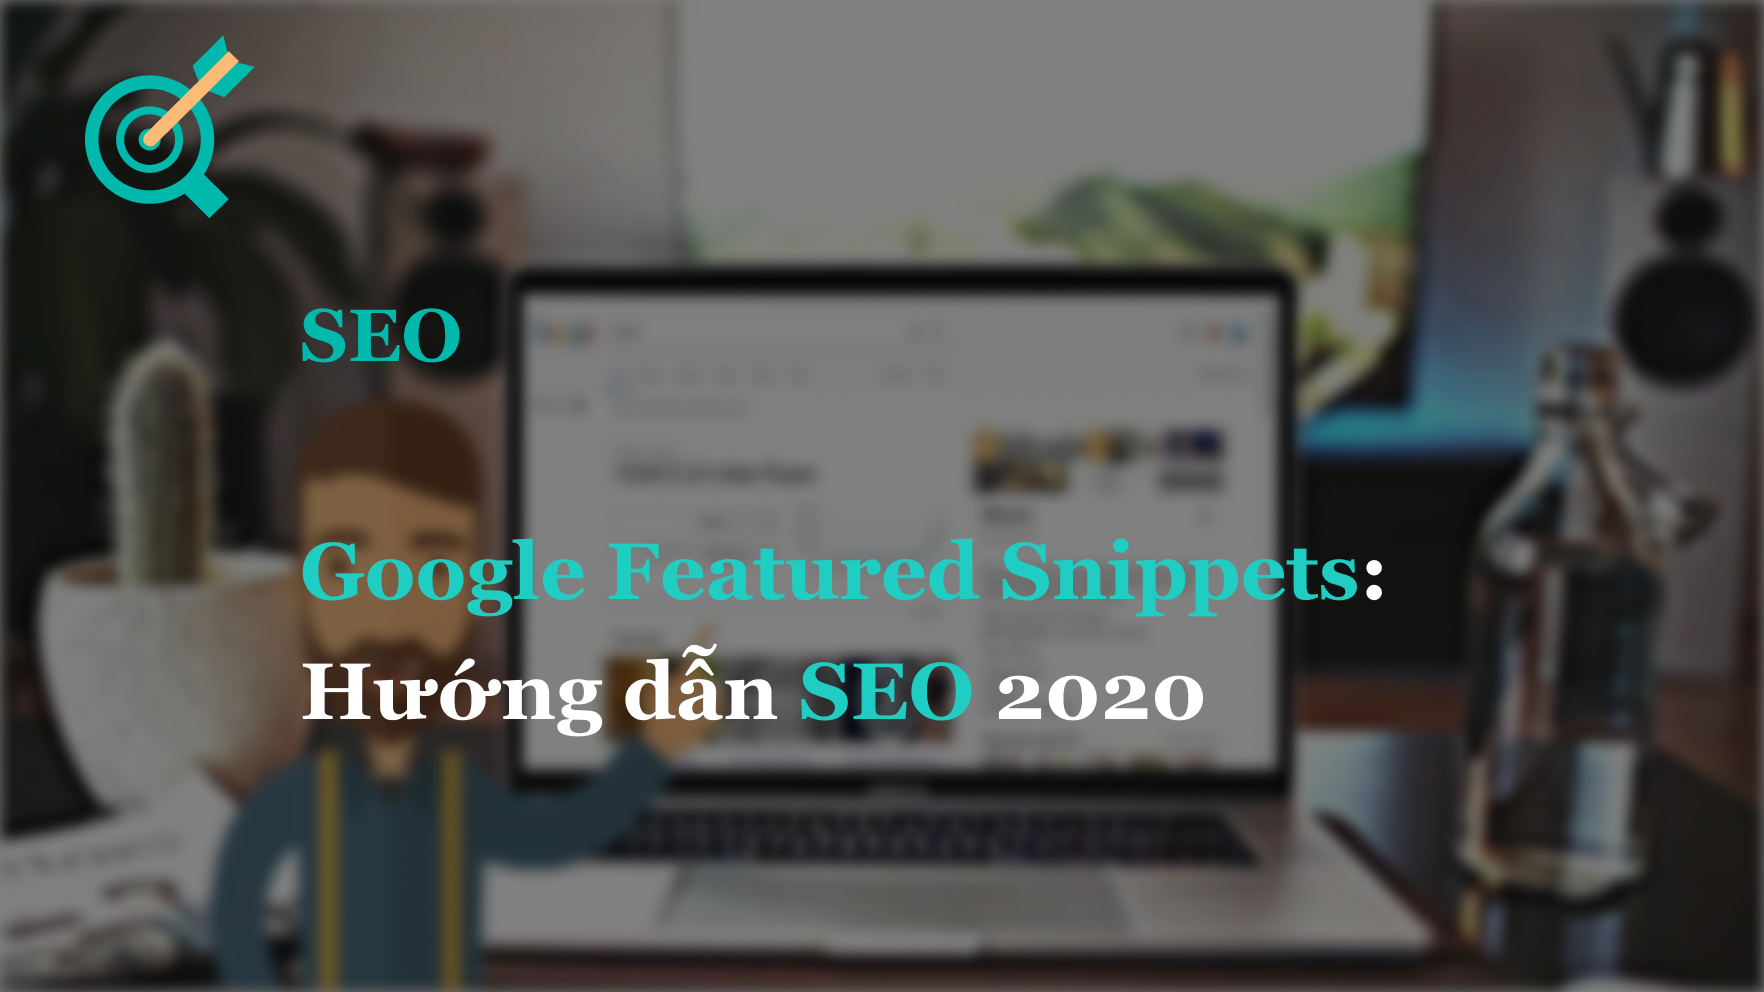 Google Featured Snippets: Hướng dẫn SEO 2020